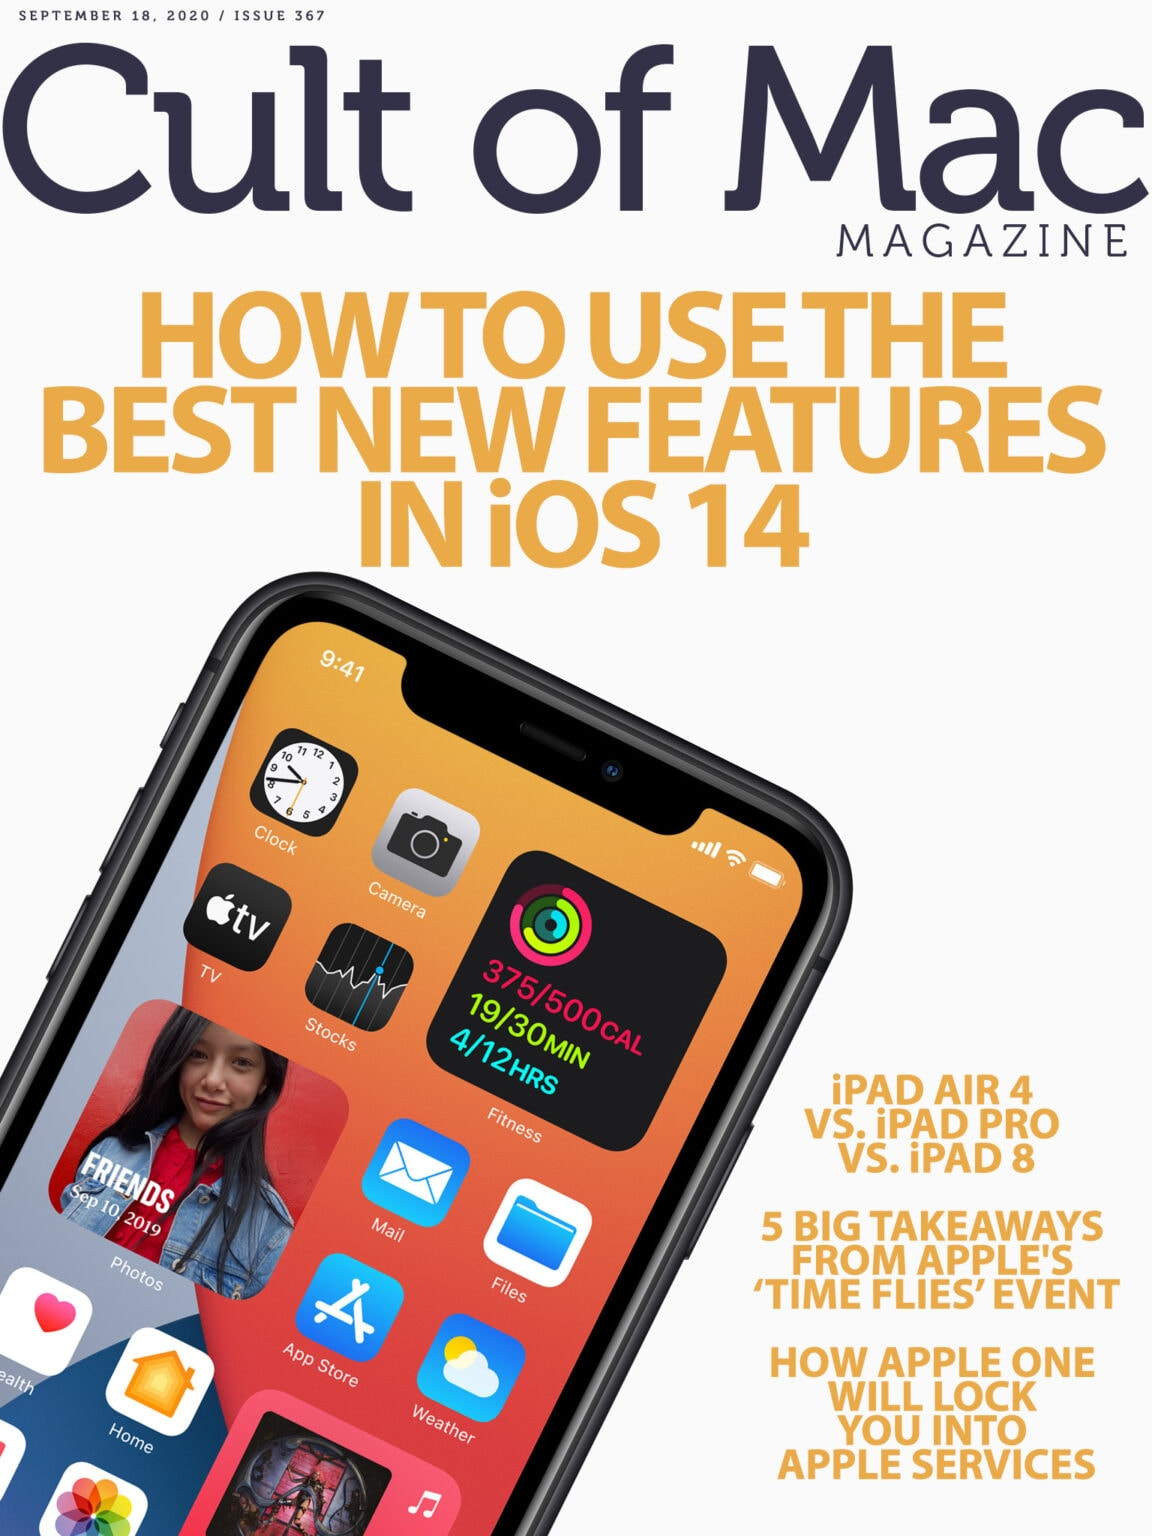 Now that you've upgraded, it's time to take advantage of all the new iOS 14 features.